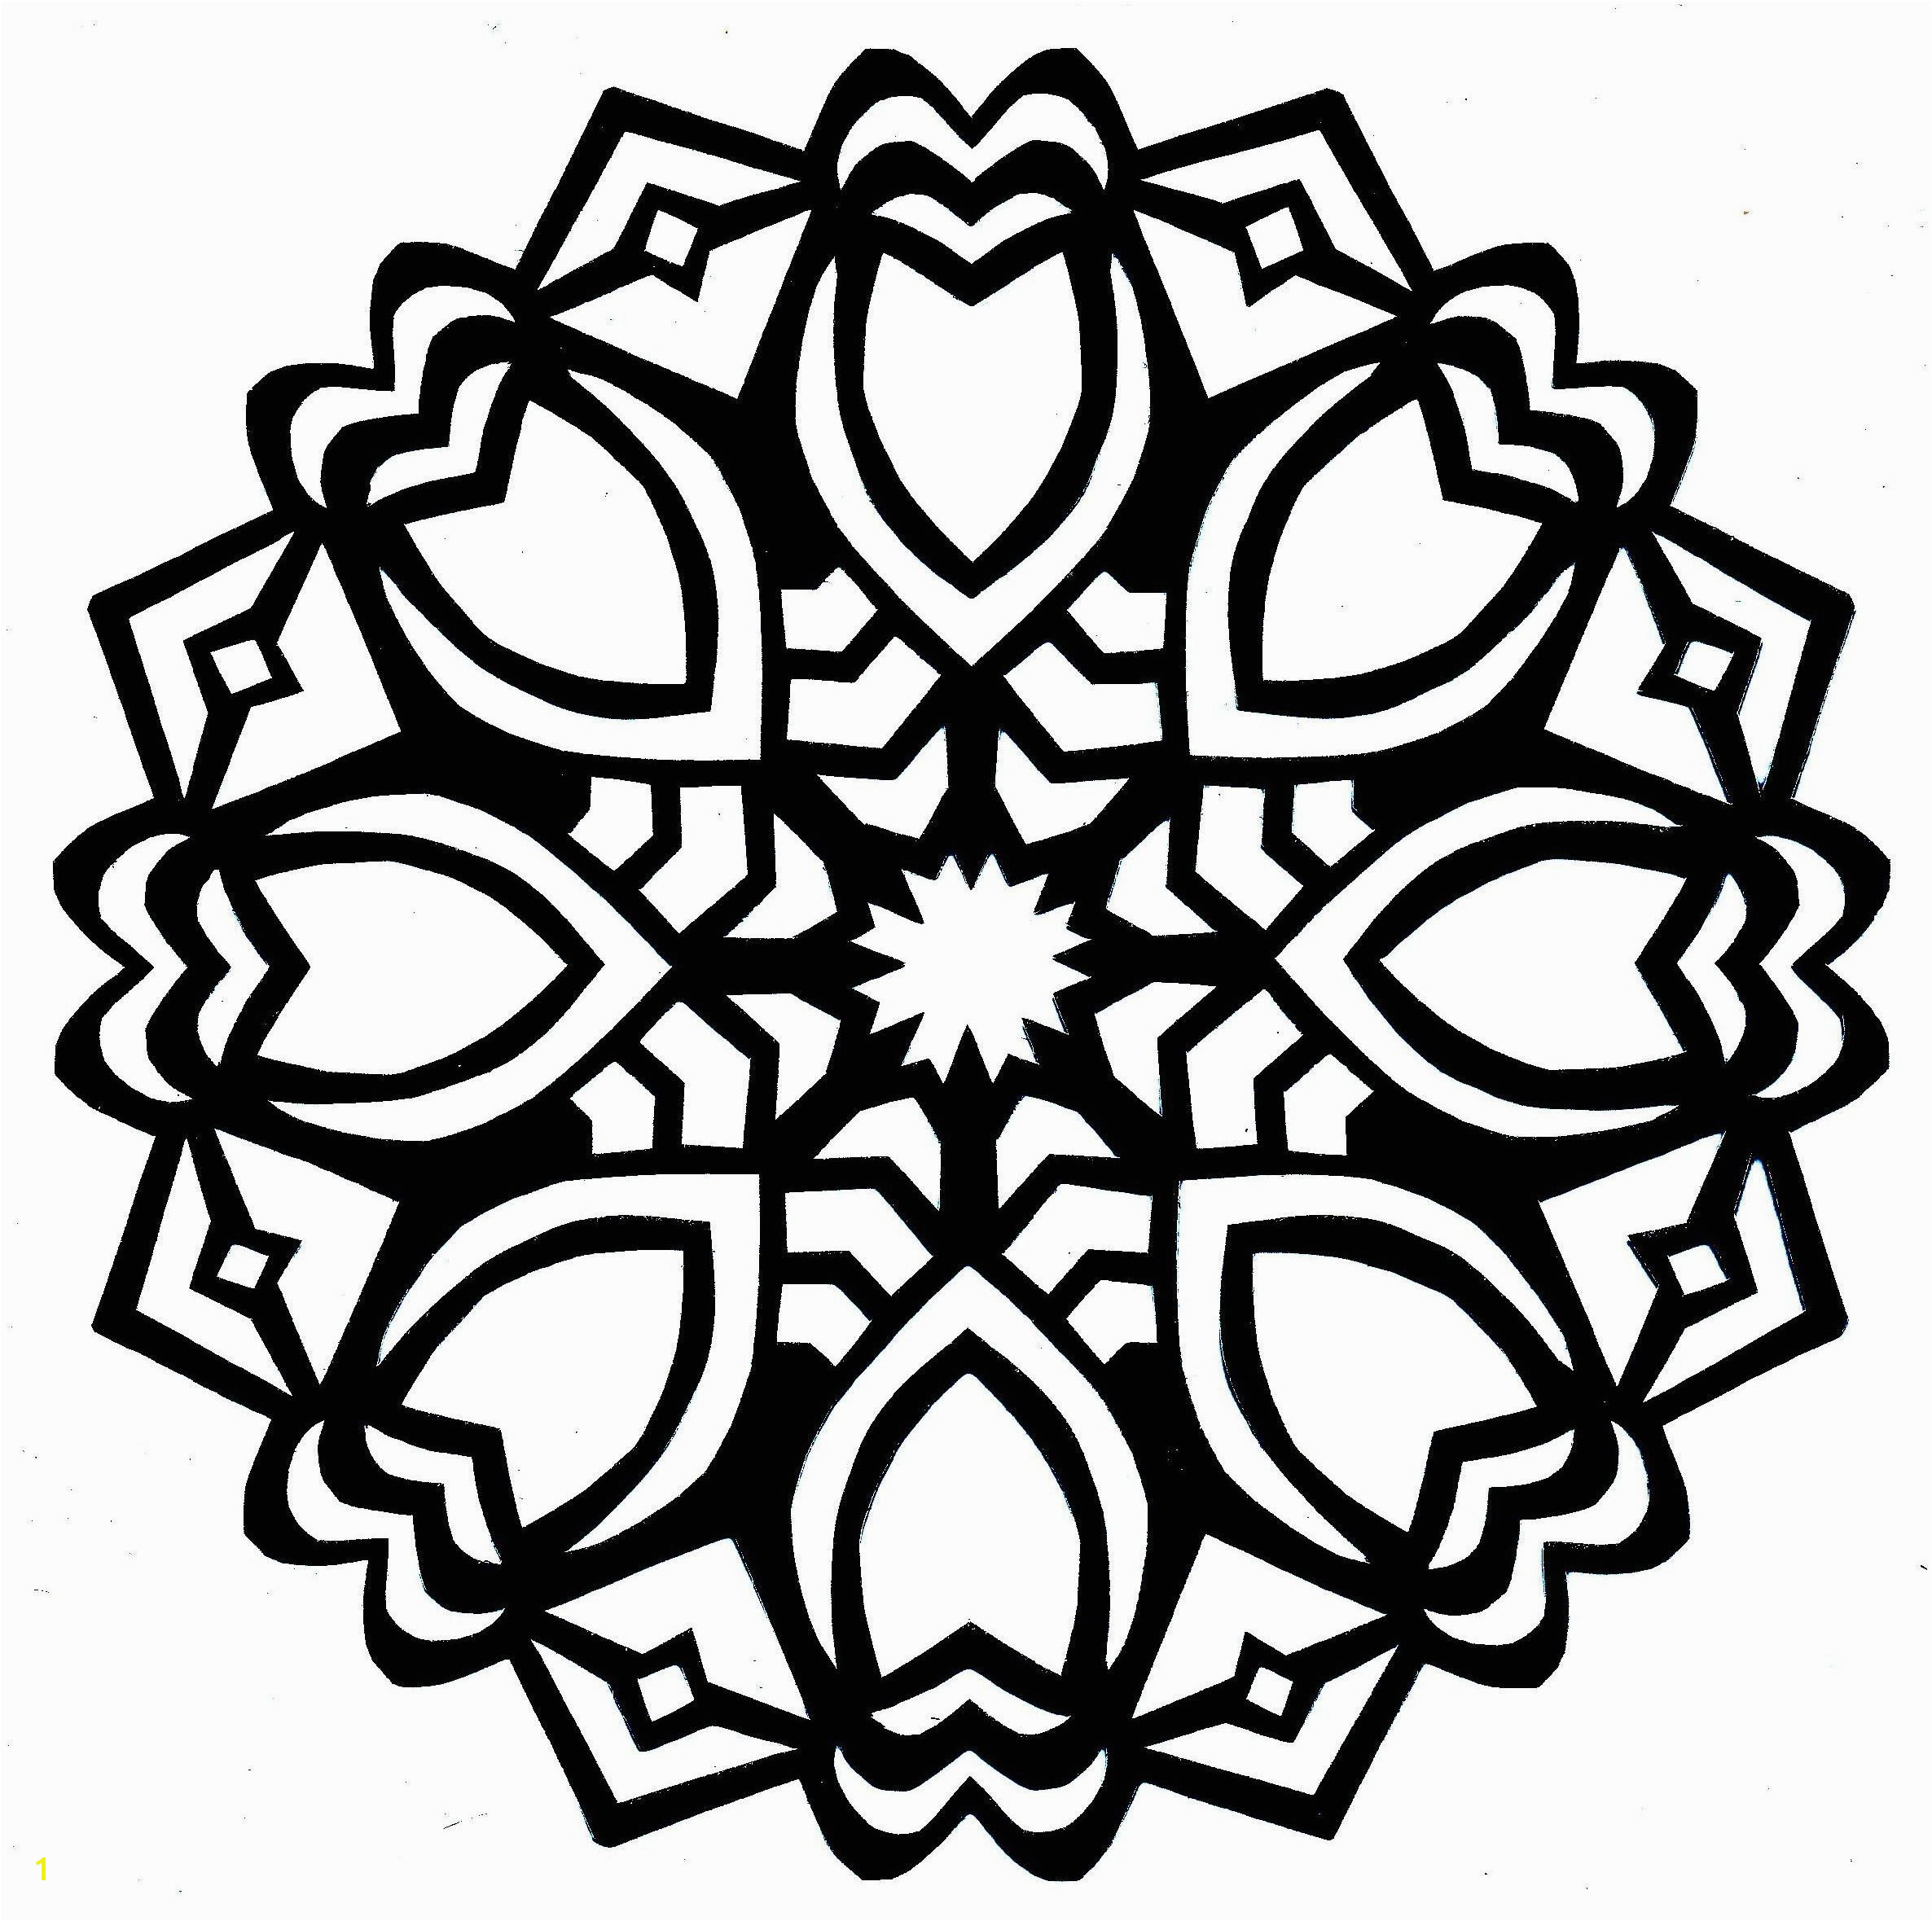 Mosaic Coloring Pages to Print Mosaic Coloring Pages